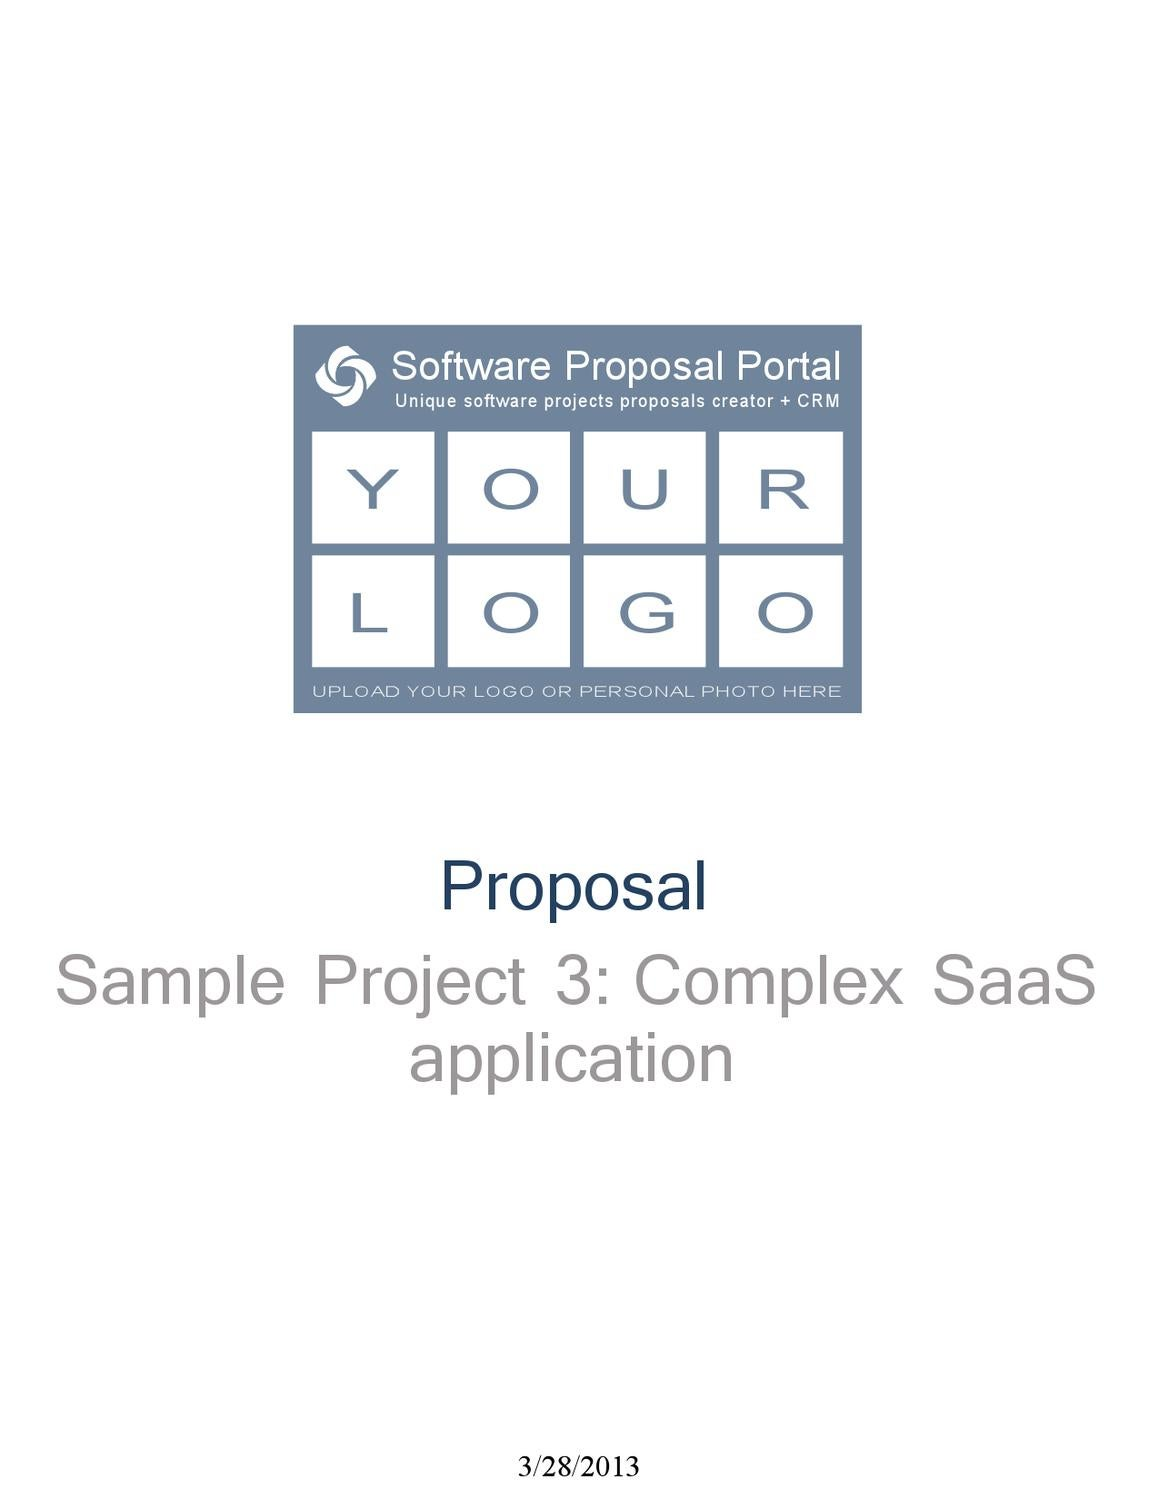 Business Proposal Template Sample With Accurate Effort Estimation By